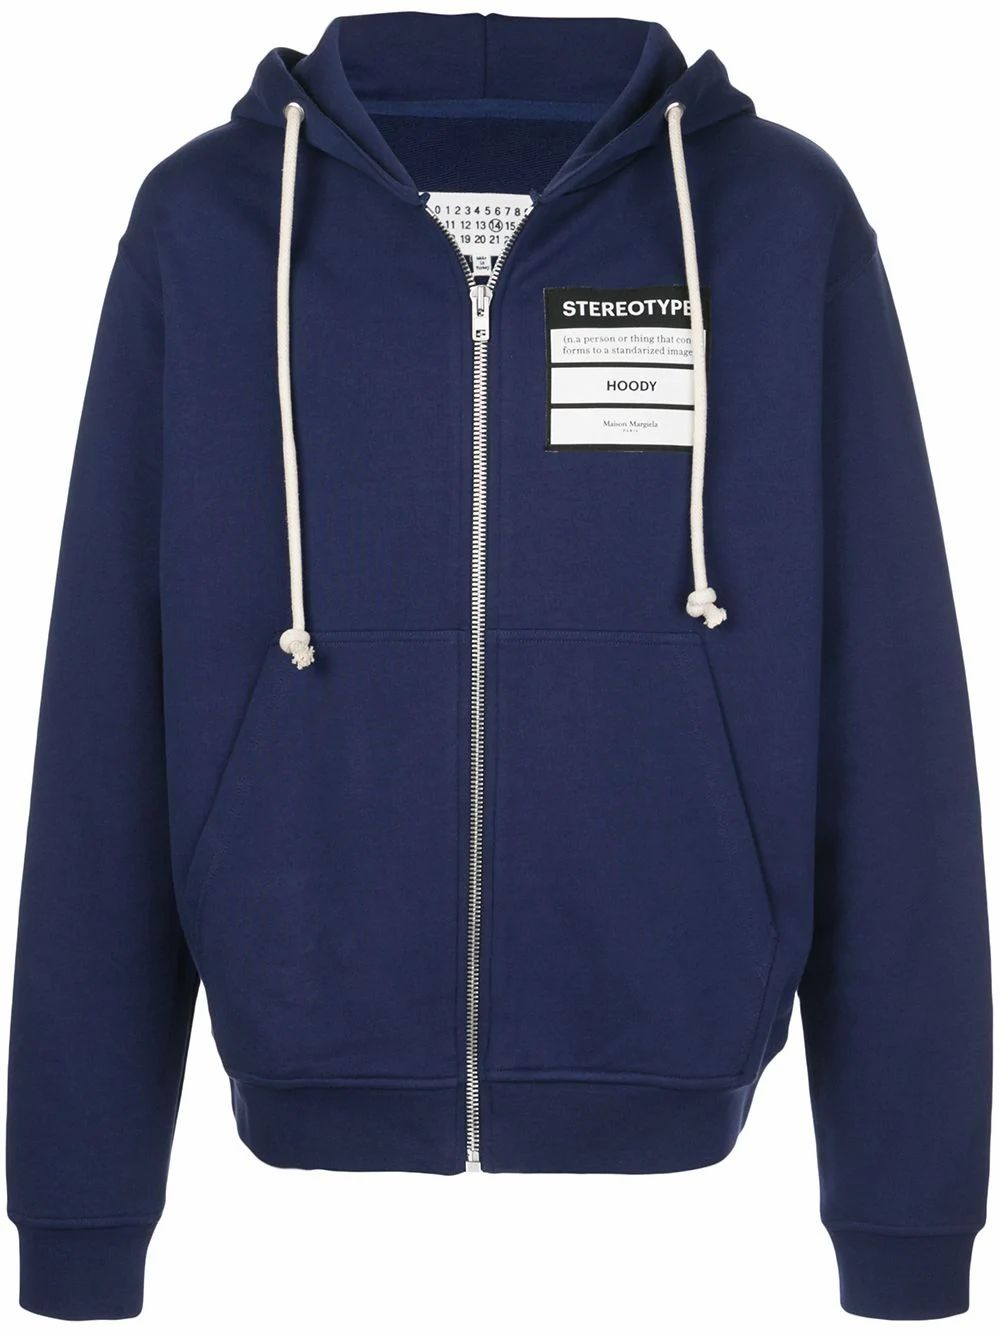 Maison Margiela MAISON MARGIELA MEN'S BLUE COTTON SWEATSHIRT